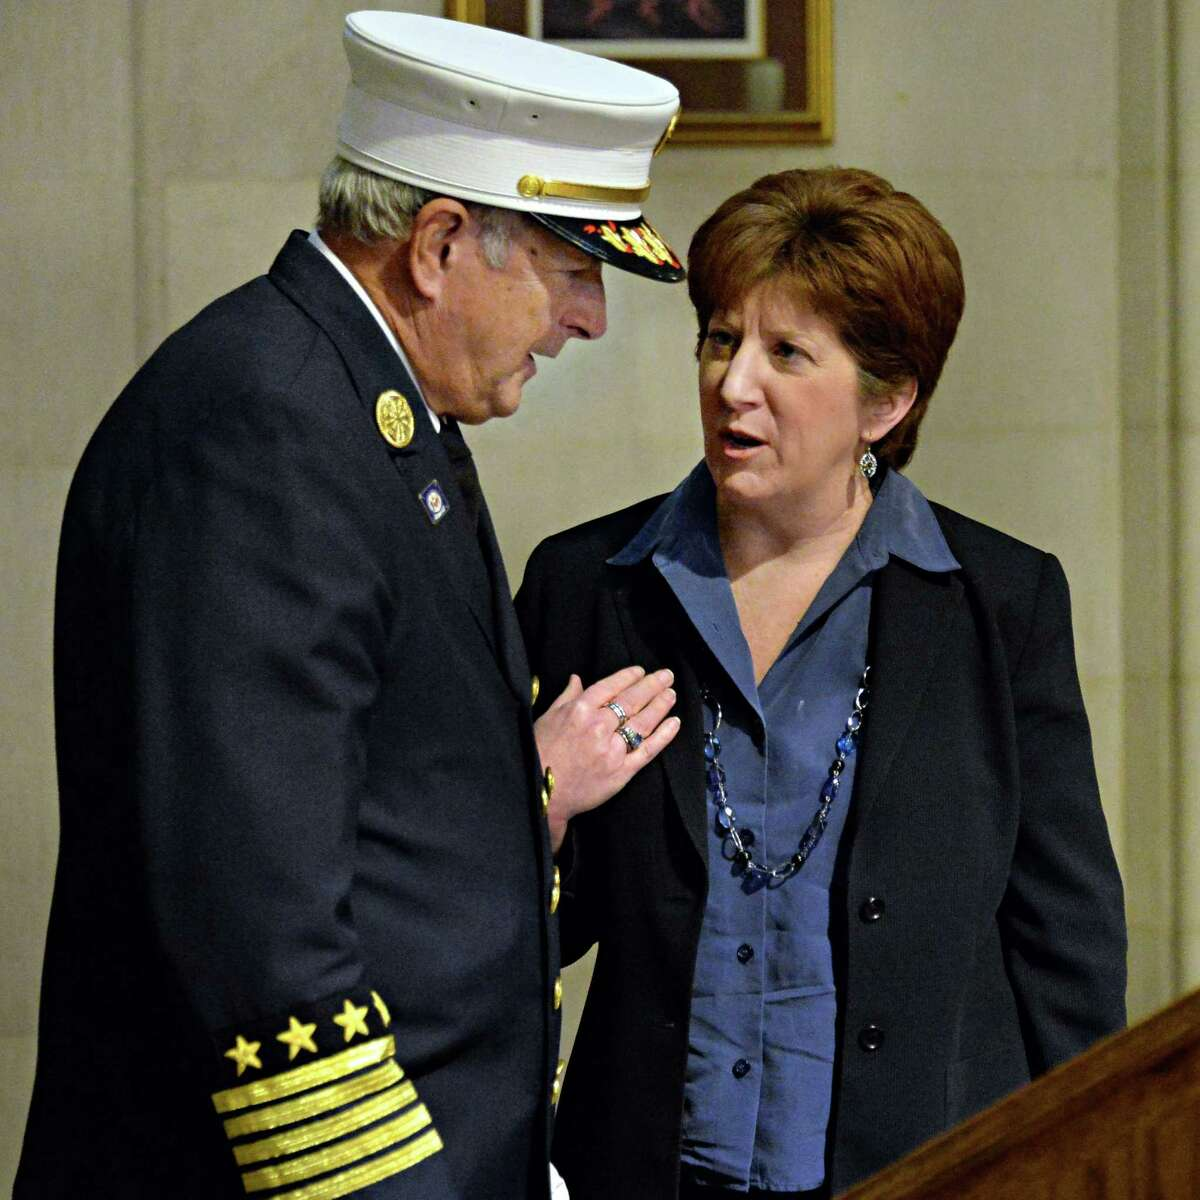 Photos: New Albany Fire Chief Sworn In